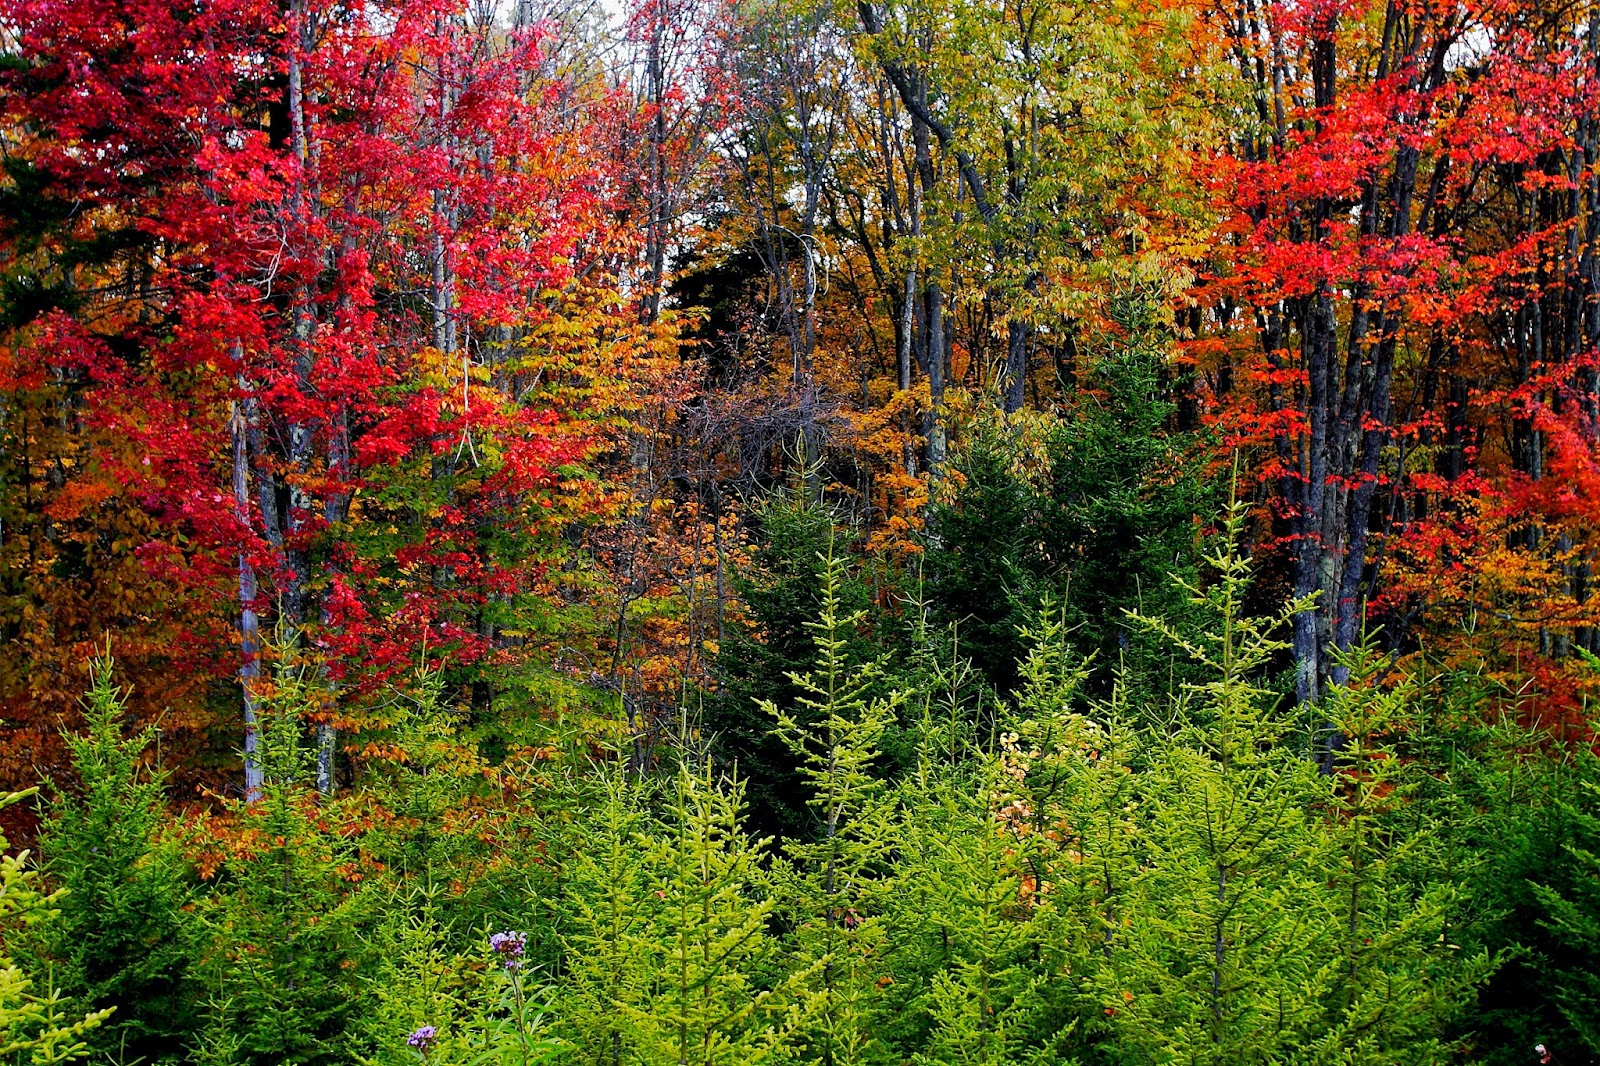 Perfect for a background or even a wall mural this autumn foliage picture was taken in the West Virginia mountains near the Cheat River. Small pine trees cover the base of the forest in this colorful fall foliage picture. It is said that there are a lot of black bear around this area, we are hoping to see one.  Picture Height: 2304 pixels Picture Width: 3456 pixels Lens Aperture: f/5 Image Exposure Time: 1/25 sec Lens Focal Length mm: 28 mm Photo Exposure Value: 0 EV Camera Model: Canon EOS DIGITAL REBEL XT Photo White Balance: 0 Color Space: sRGB ForestWander Nature Photography: ForestWander.com ForestWander: ForestWander Nature Photography